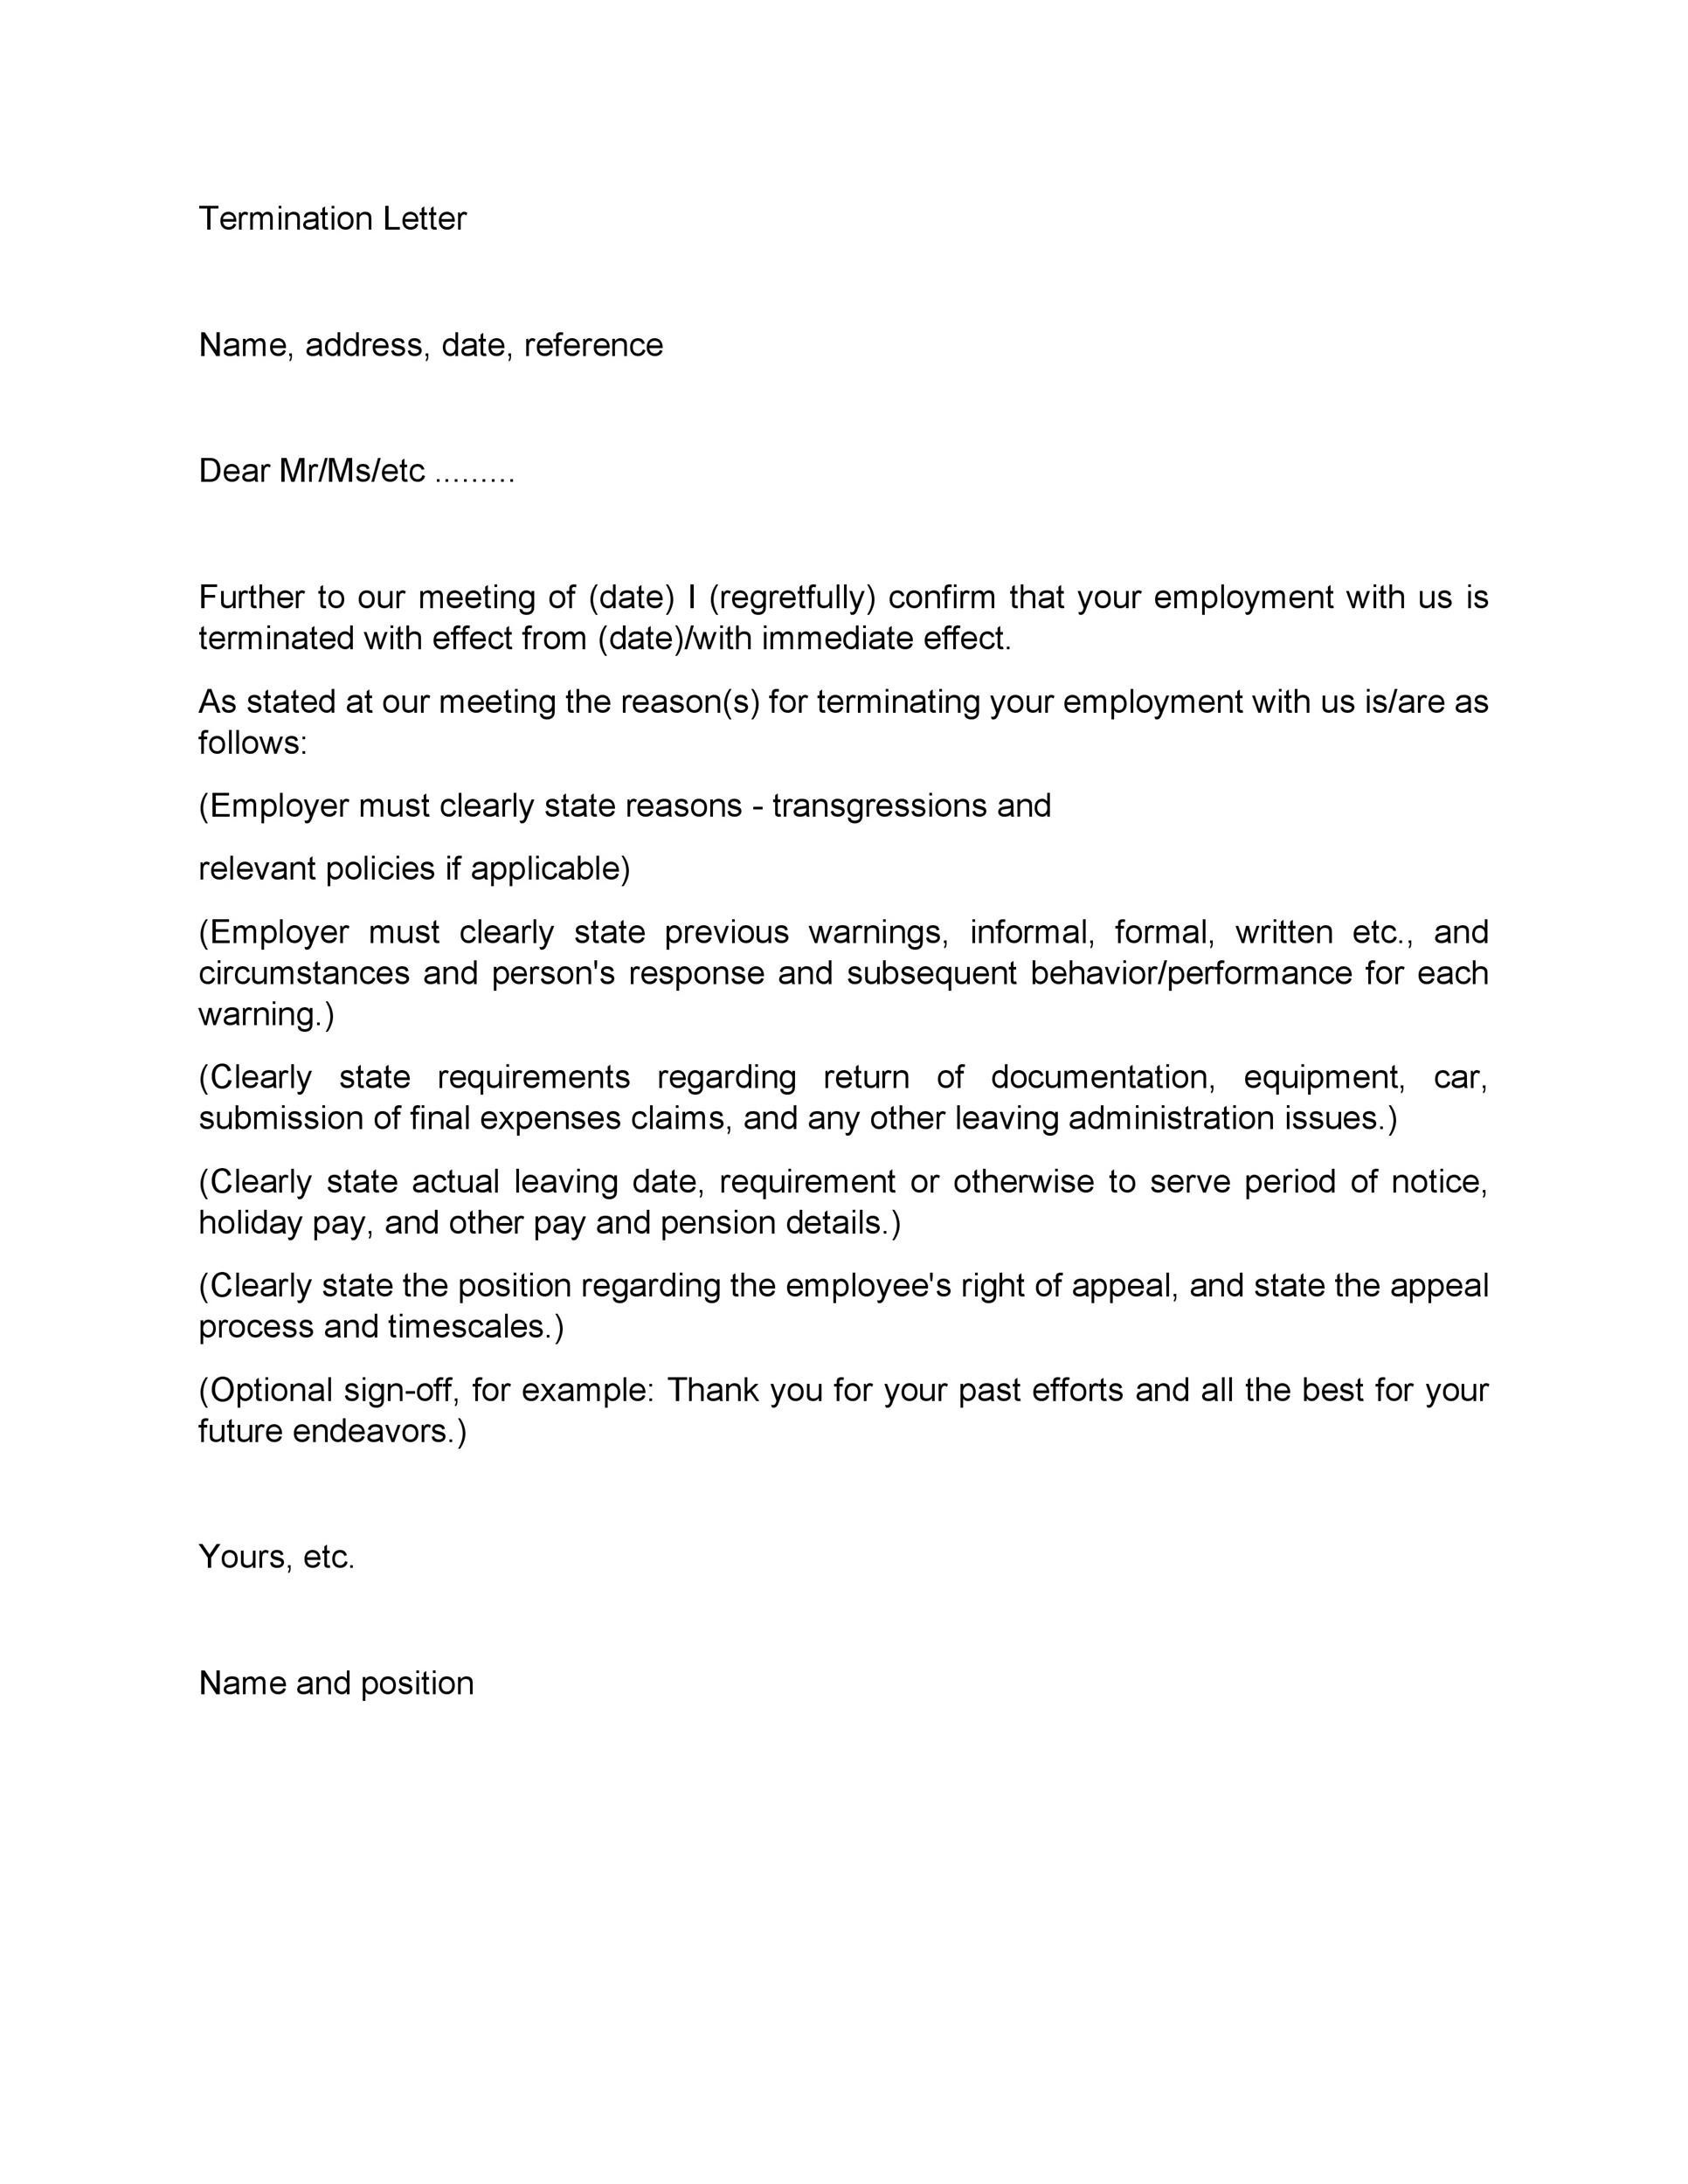 Sample Letter Of Termination Employment Contract Due To Poor